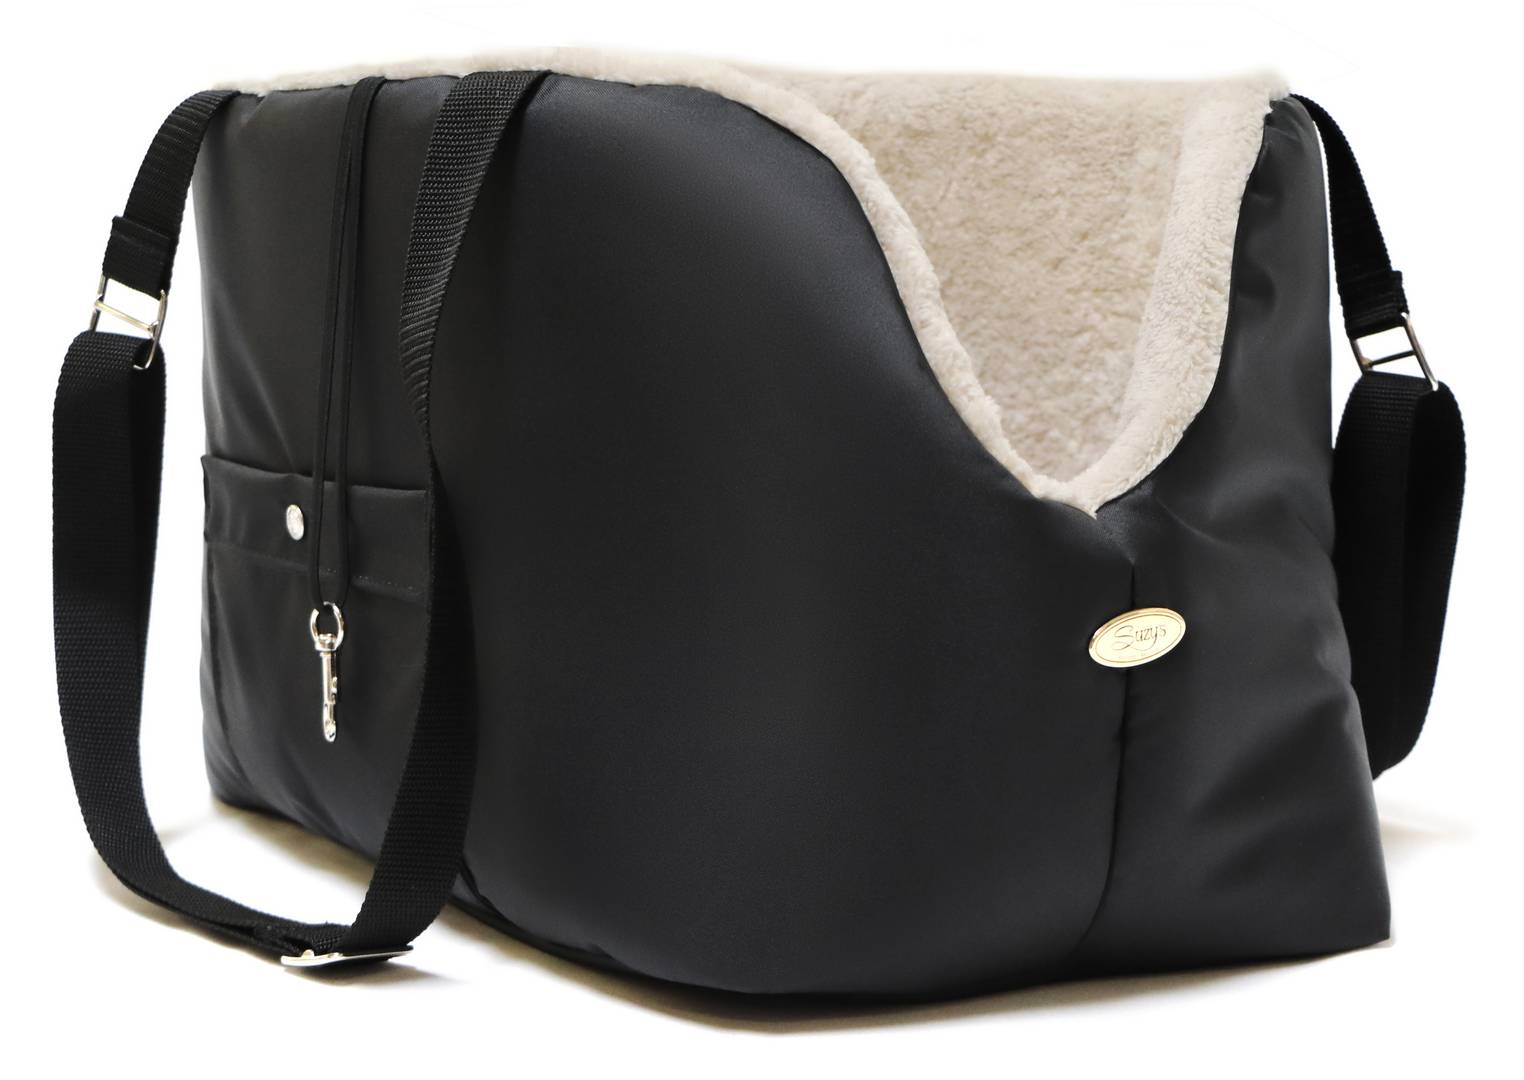 Rainy Bear Black and Beige Dog Carrier